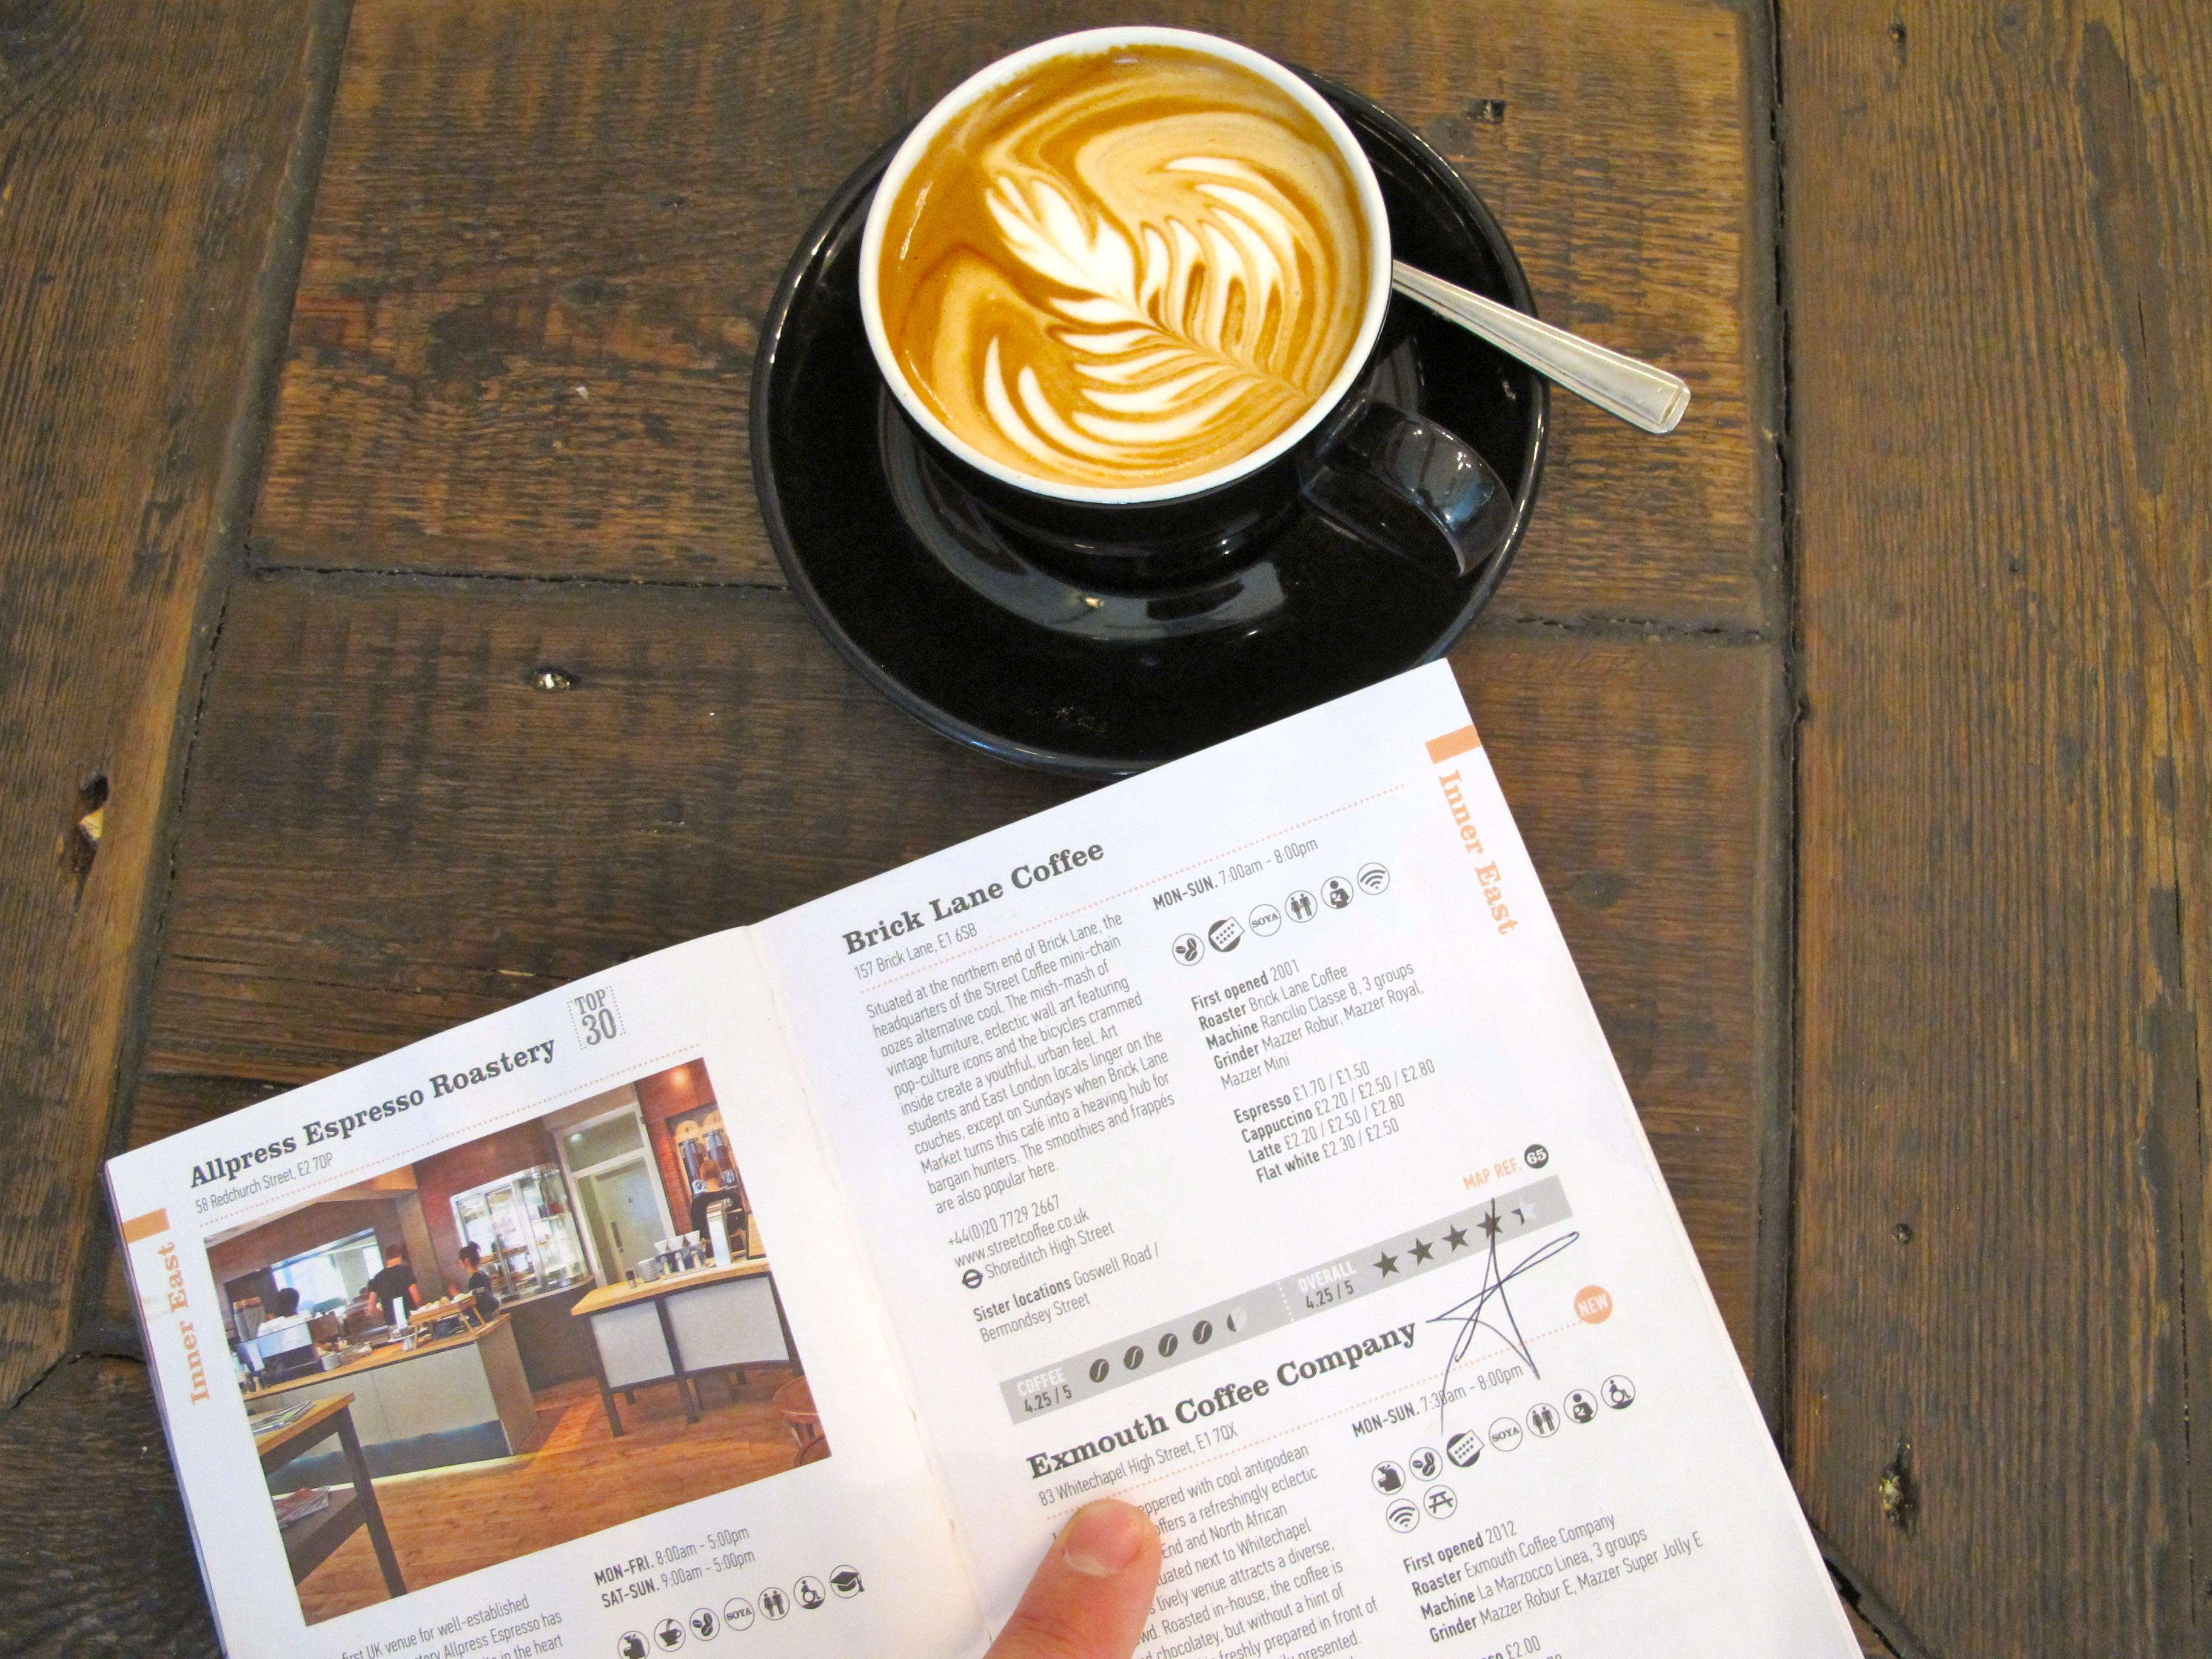 Exmouth Coffee Company London Reviewed By The Coffeevine